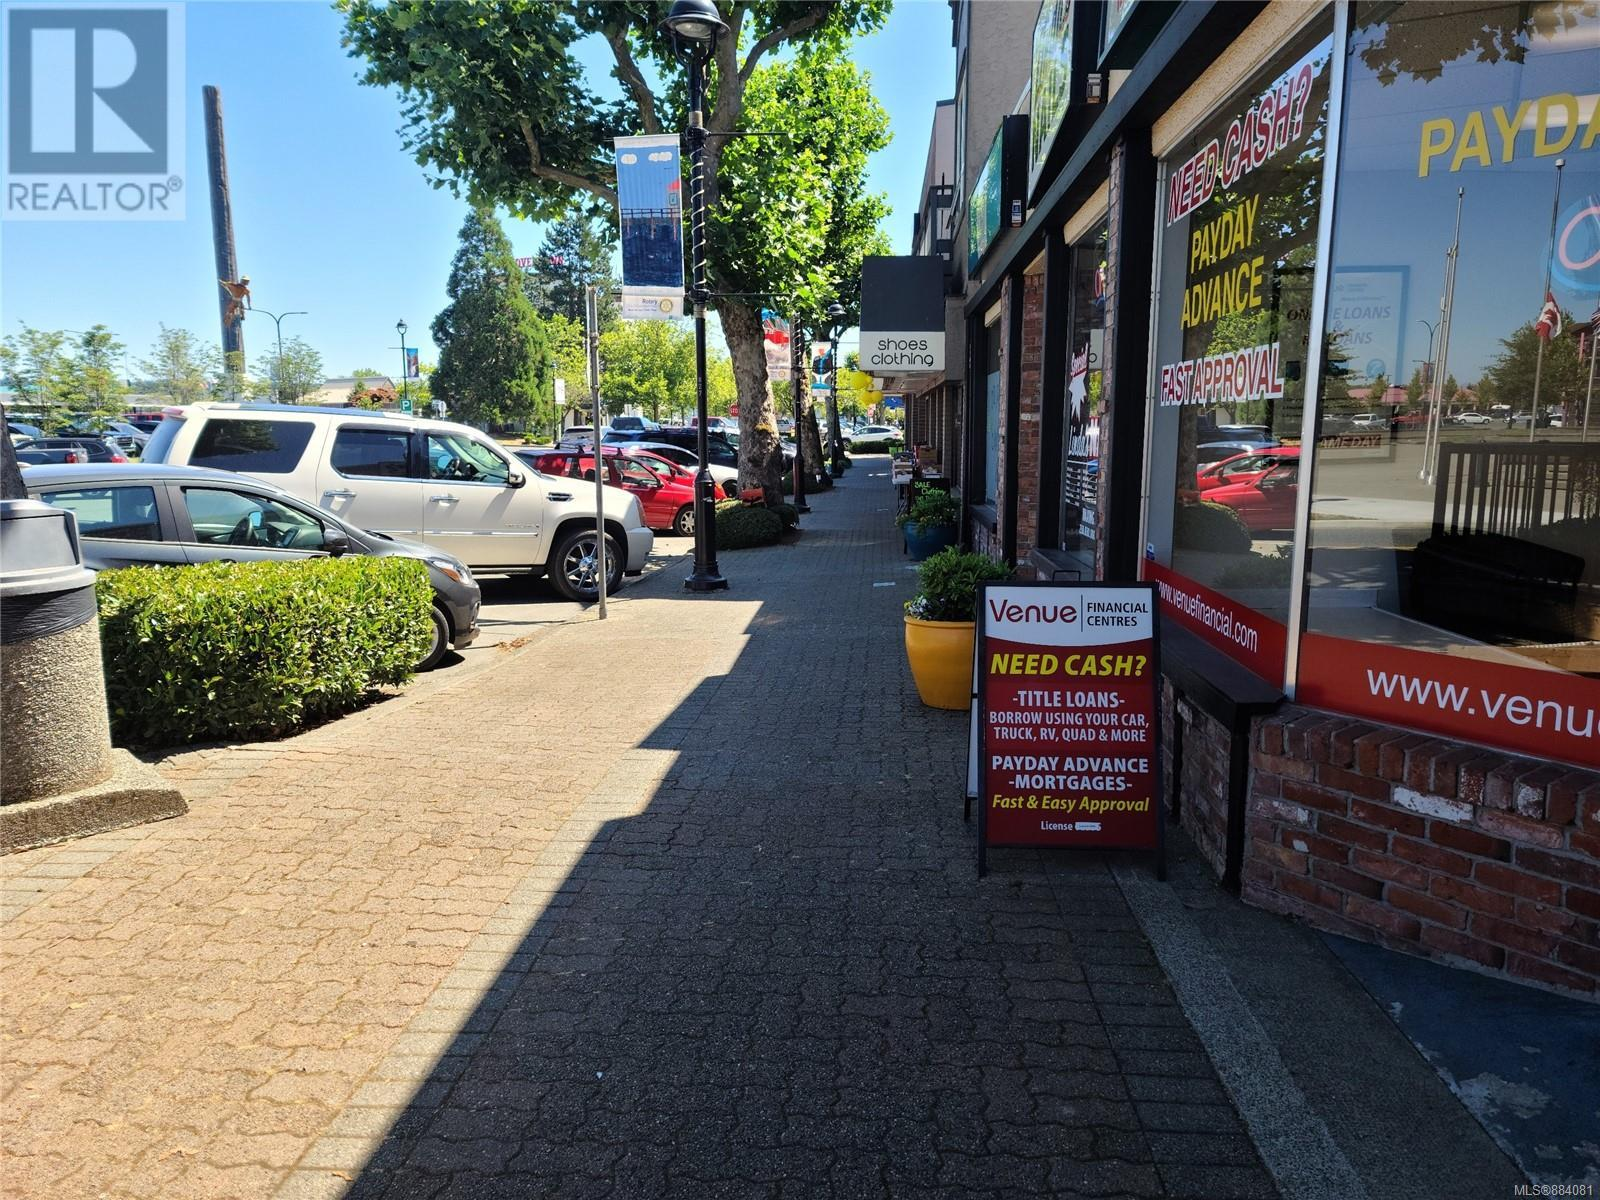 MLS® #884081 - Campbell River Retail For lease Image #12